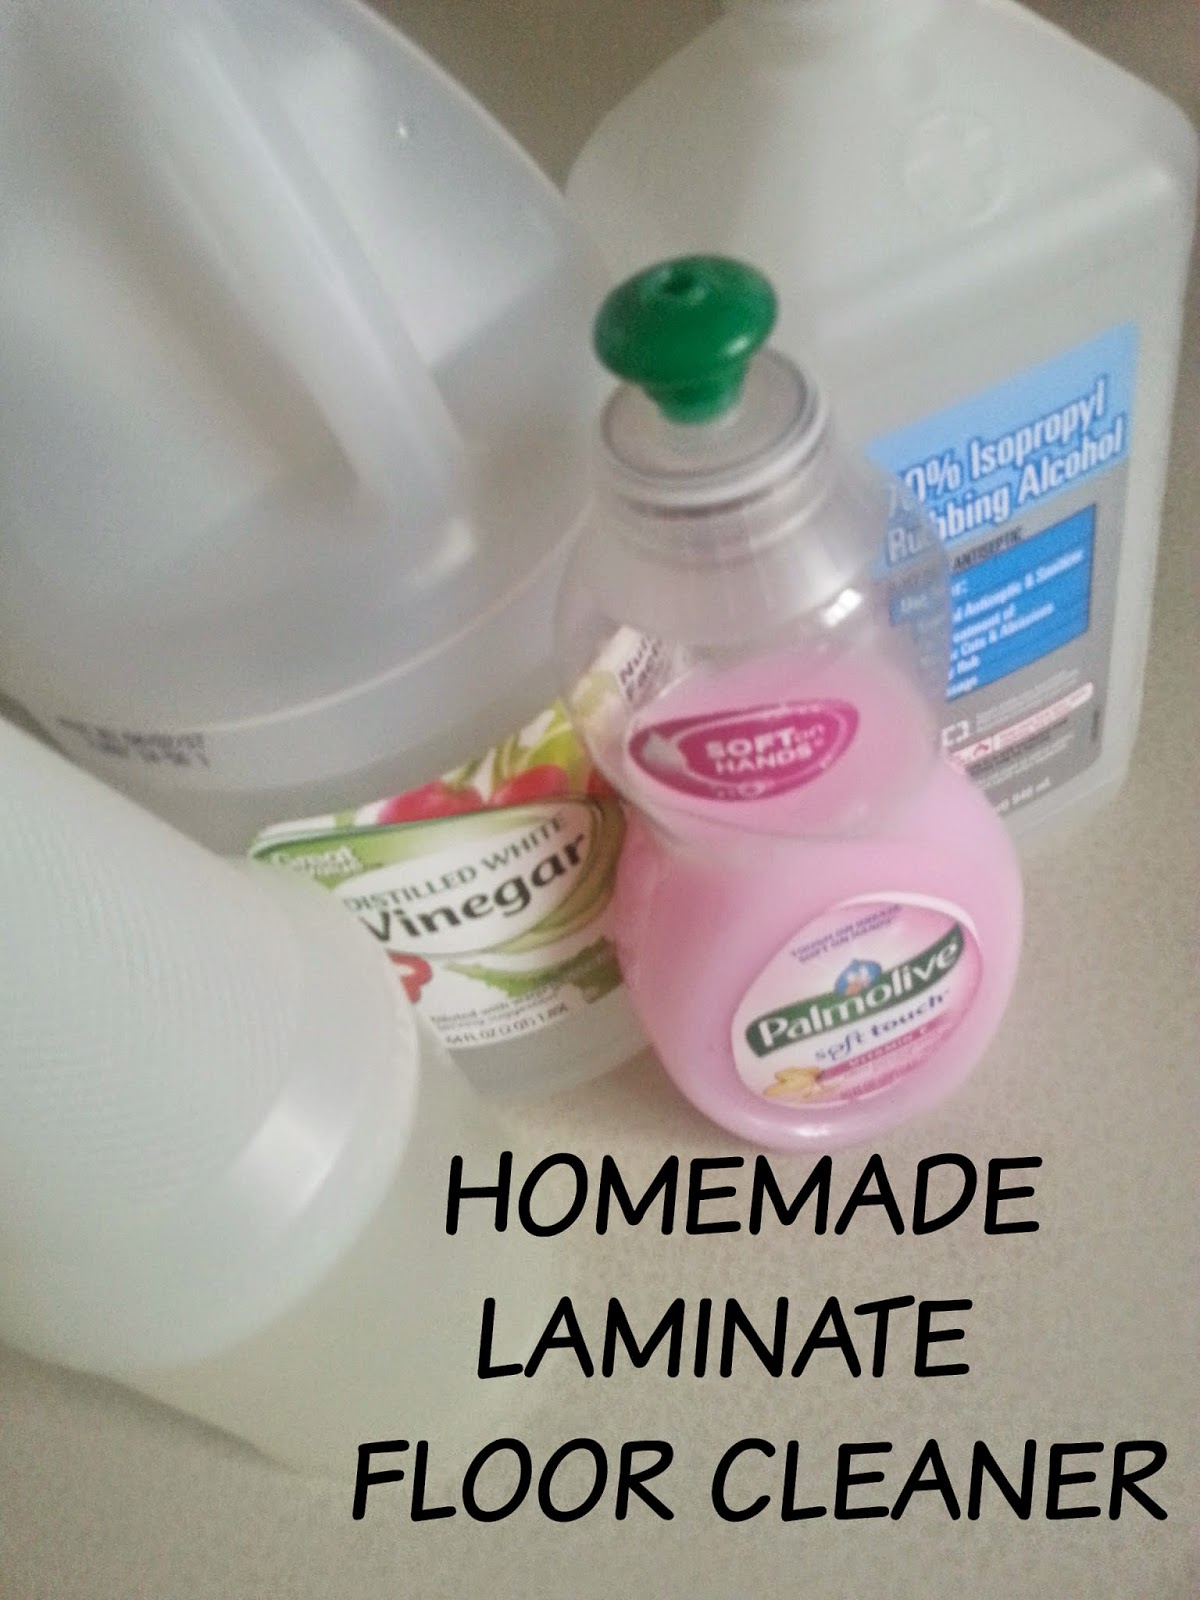 The Better Baker Homemade Laminate Floor Cleaner